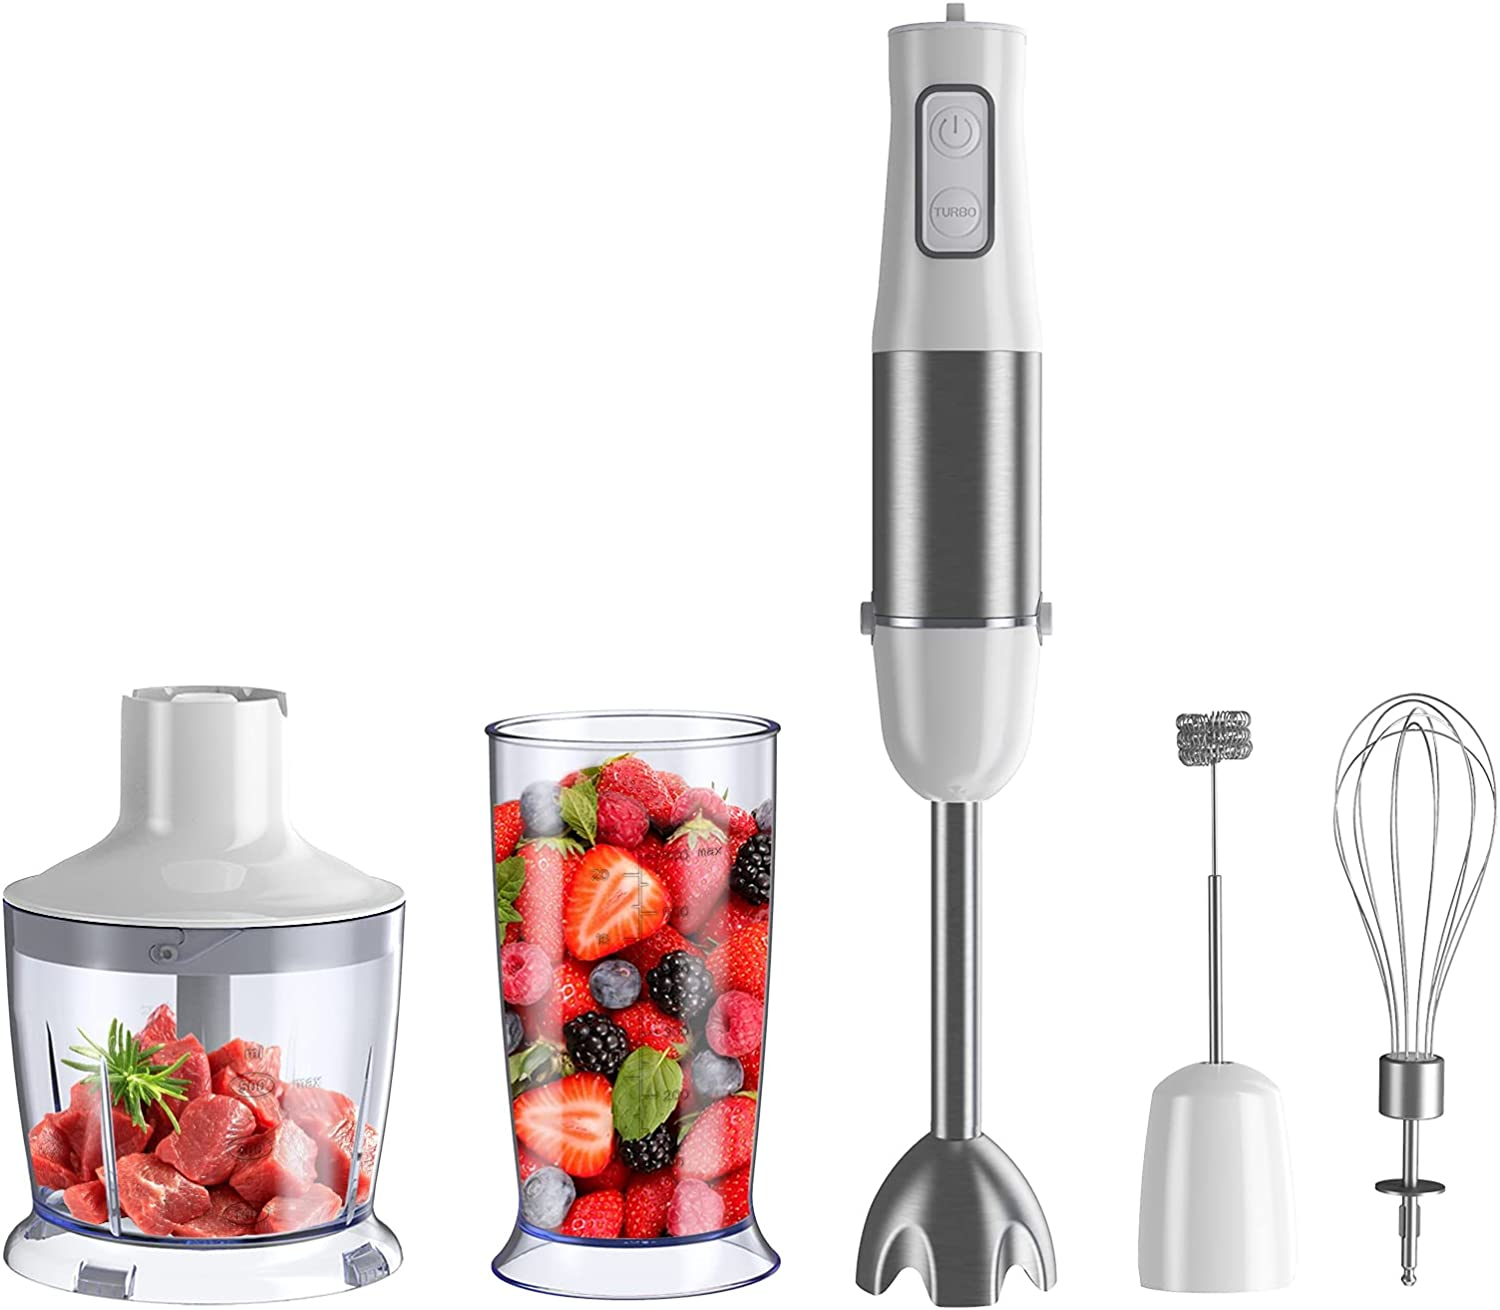 5 in 1 Immersion Hand Blender, 500 Watt Stick Mixer with Stainless Steel Blades, Heavy Duty Stick Copper Motor Handheld Blender with BPA-Free Food Chopper, Egg Beater, Milk Frother, 600ml Beaker